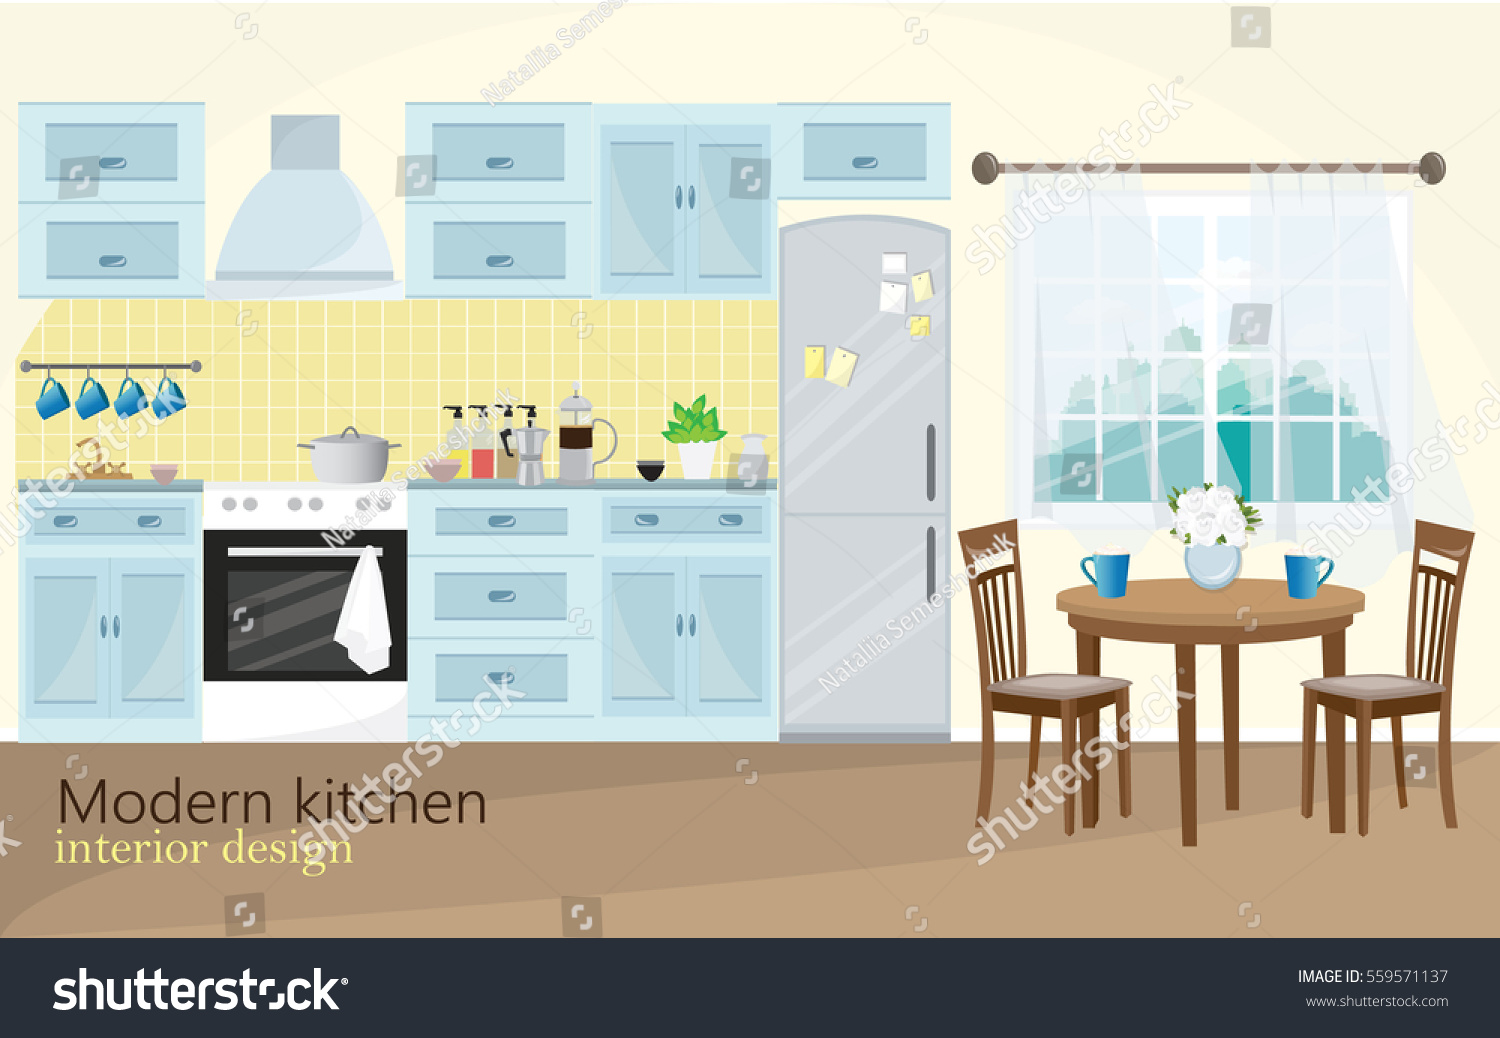 Cartoon kitchen with cabinets and window vector art illustration -  Vectors Illustrations Footage Music Illustration Of Modern Kitchen Interior Design In Blue Color With Kitchen Equipment Window Table